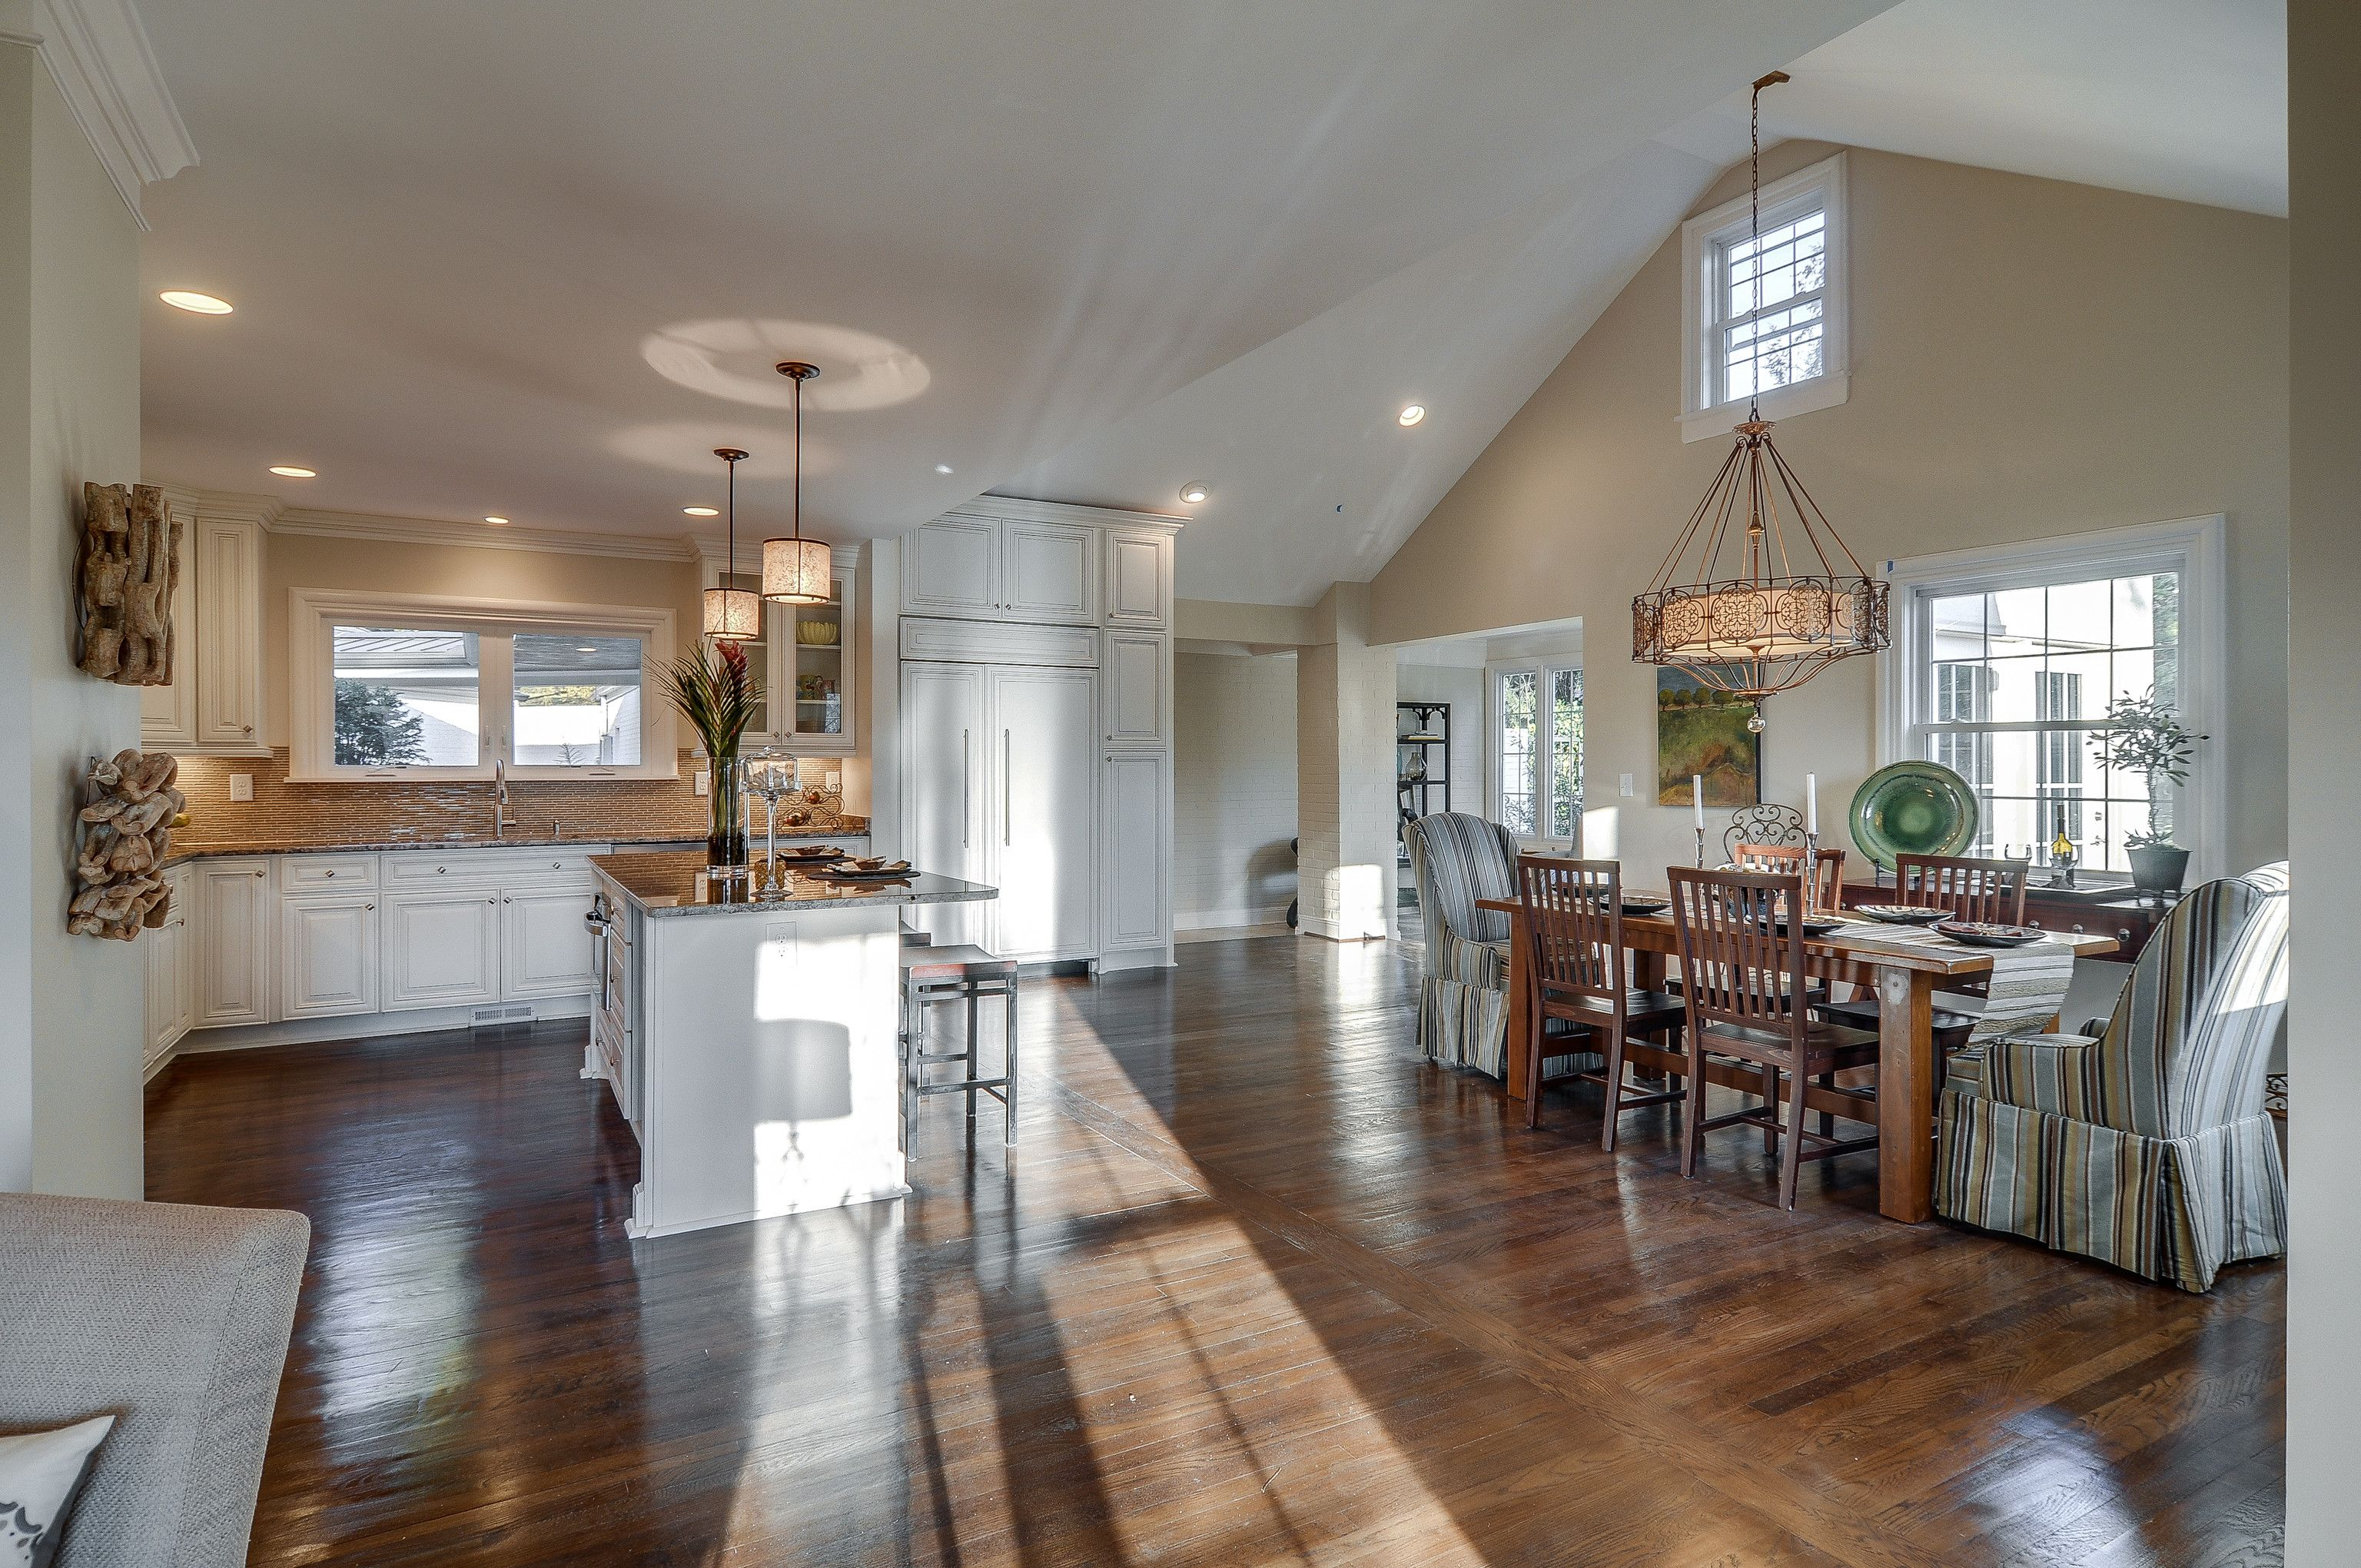 Pin by ProCraft Cabinetry on Light and Fresh   Quality ...